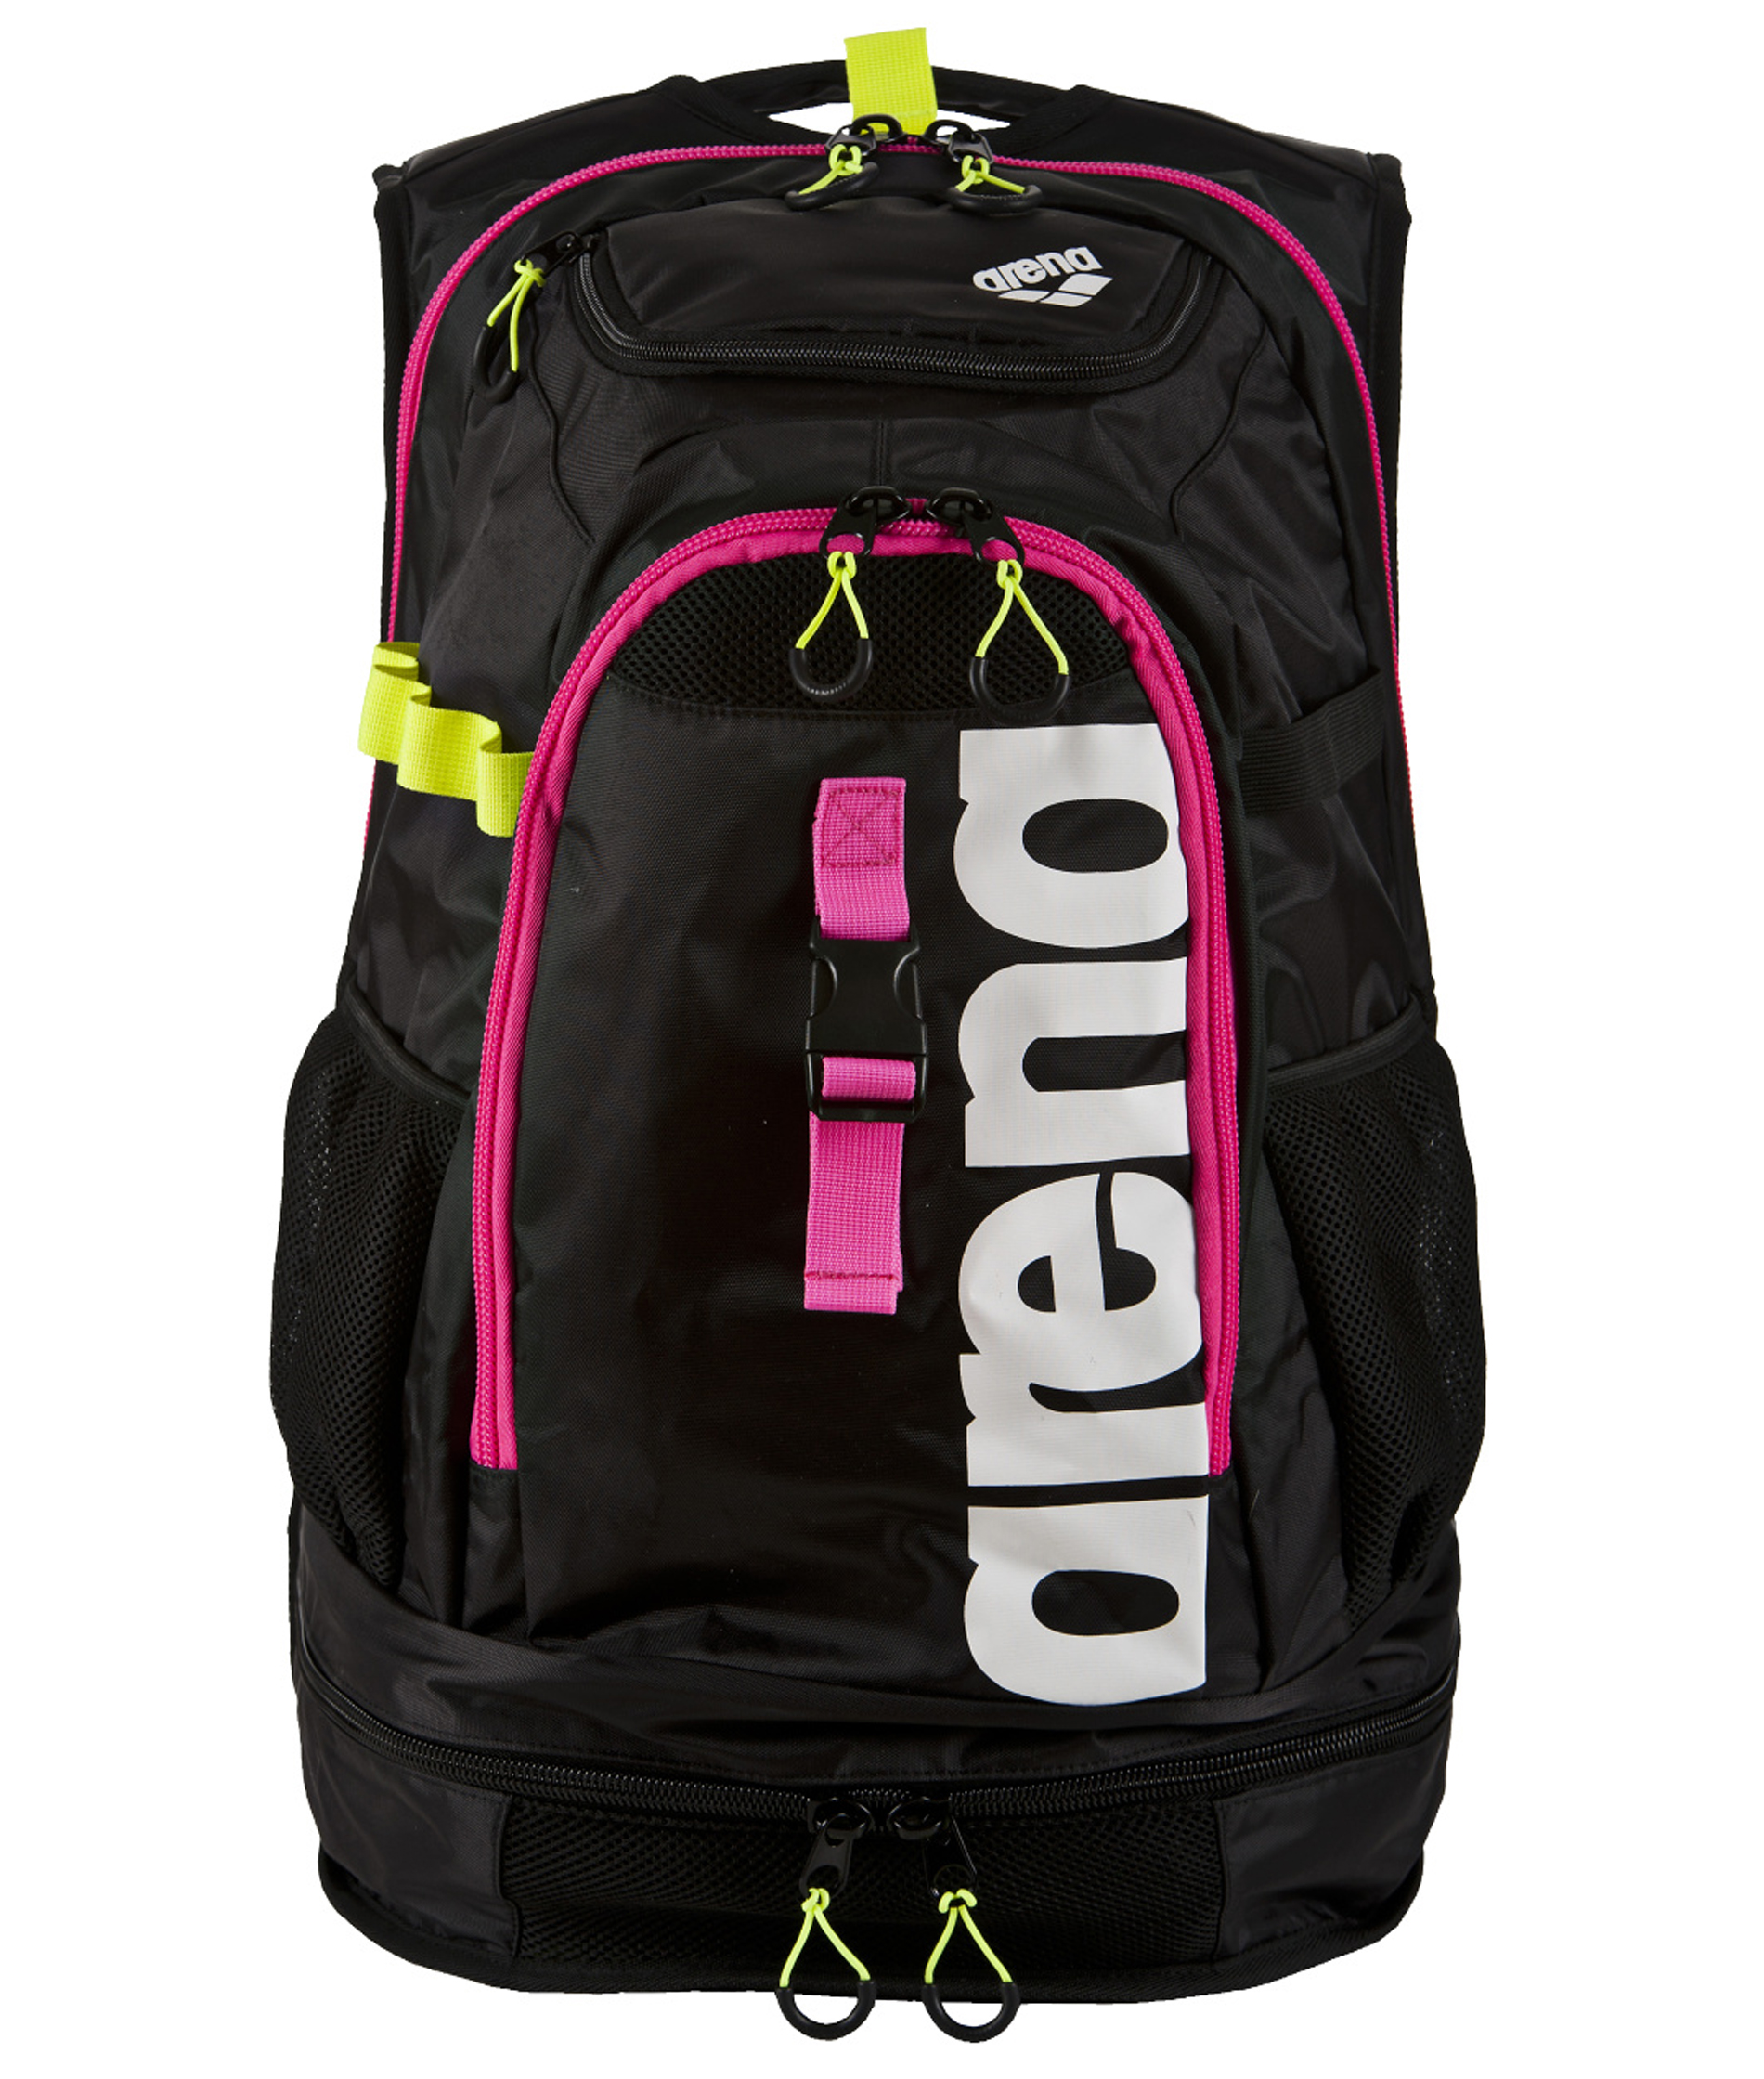 Arena Fastpack 2.1 Backpack - Black/Pink